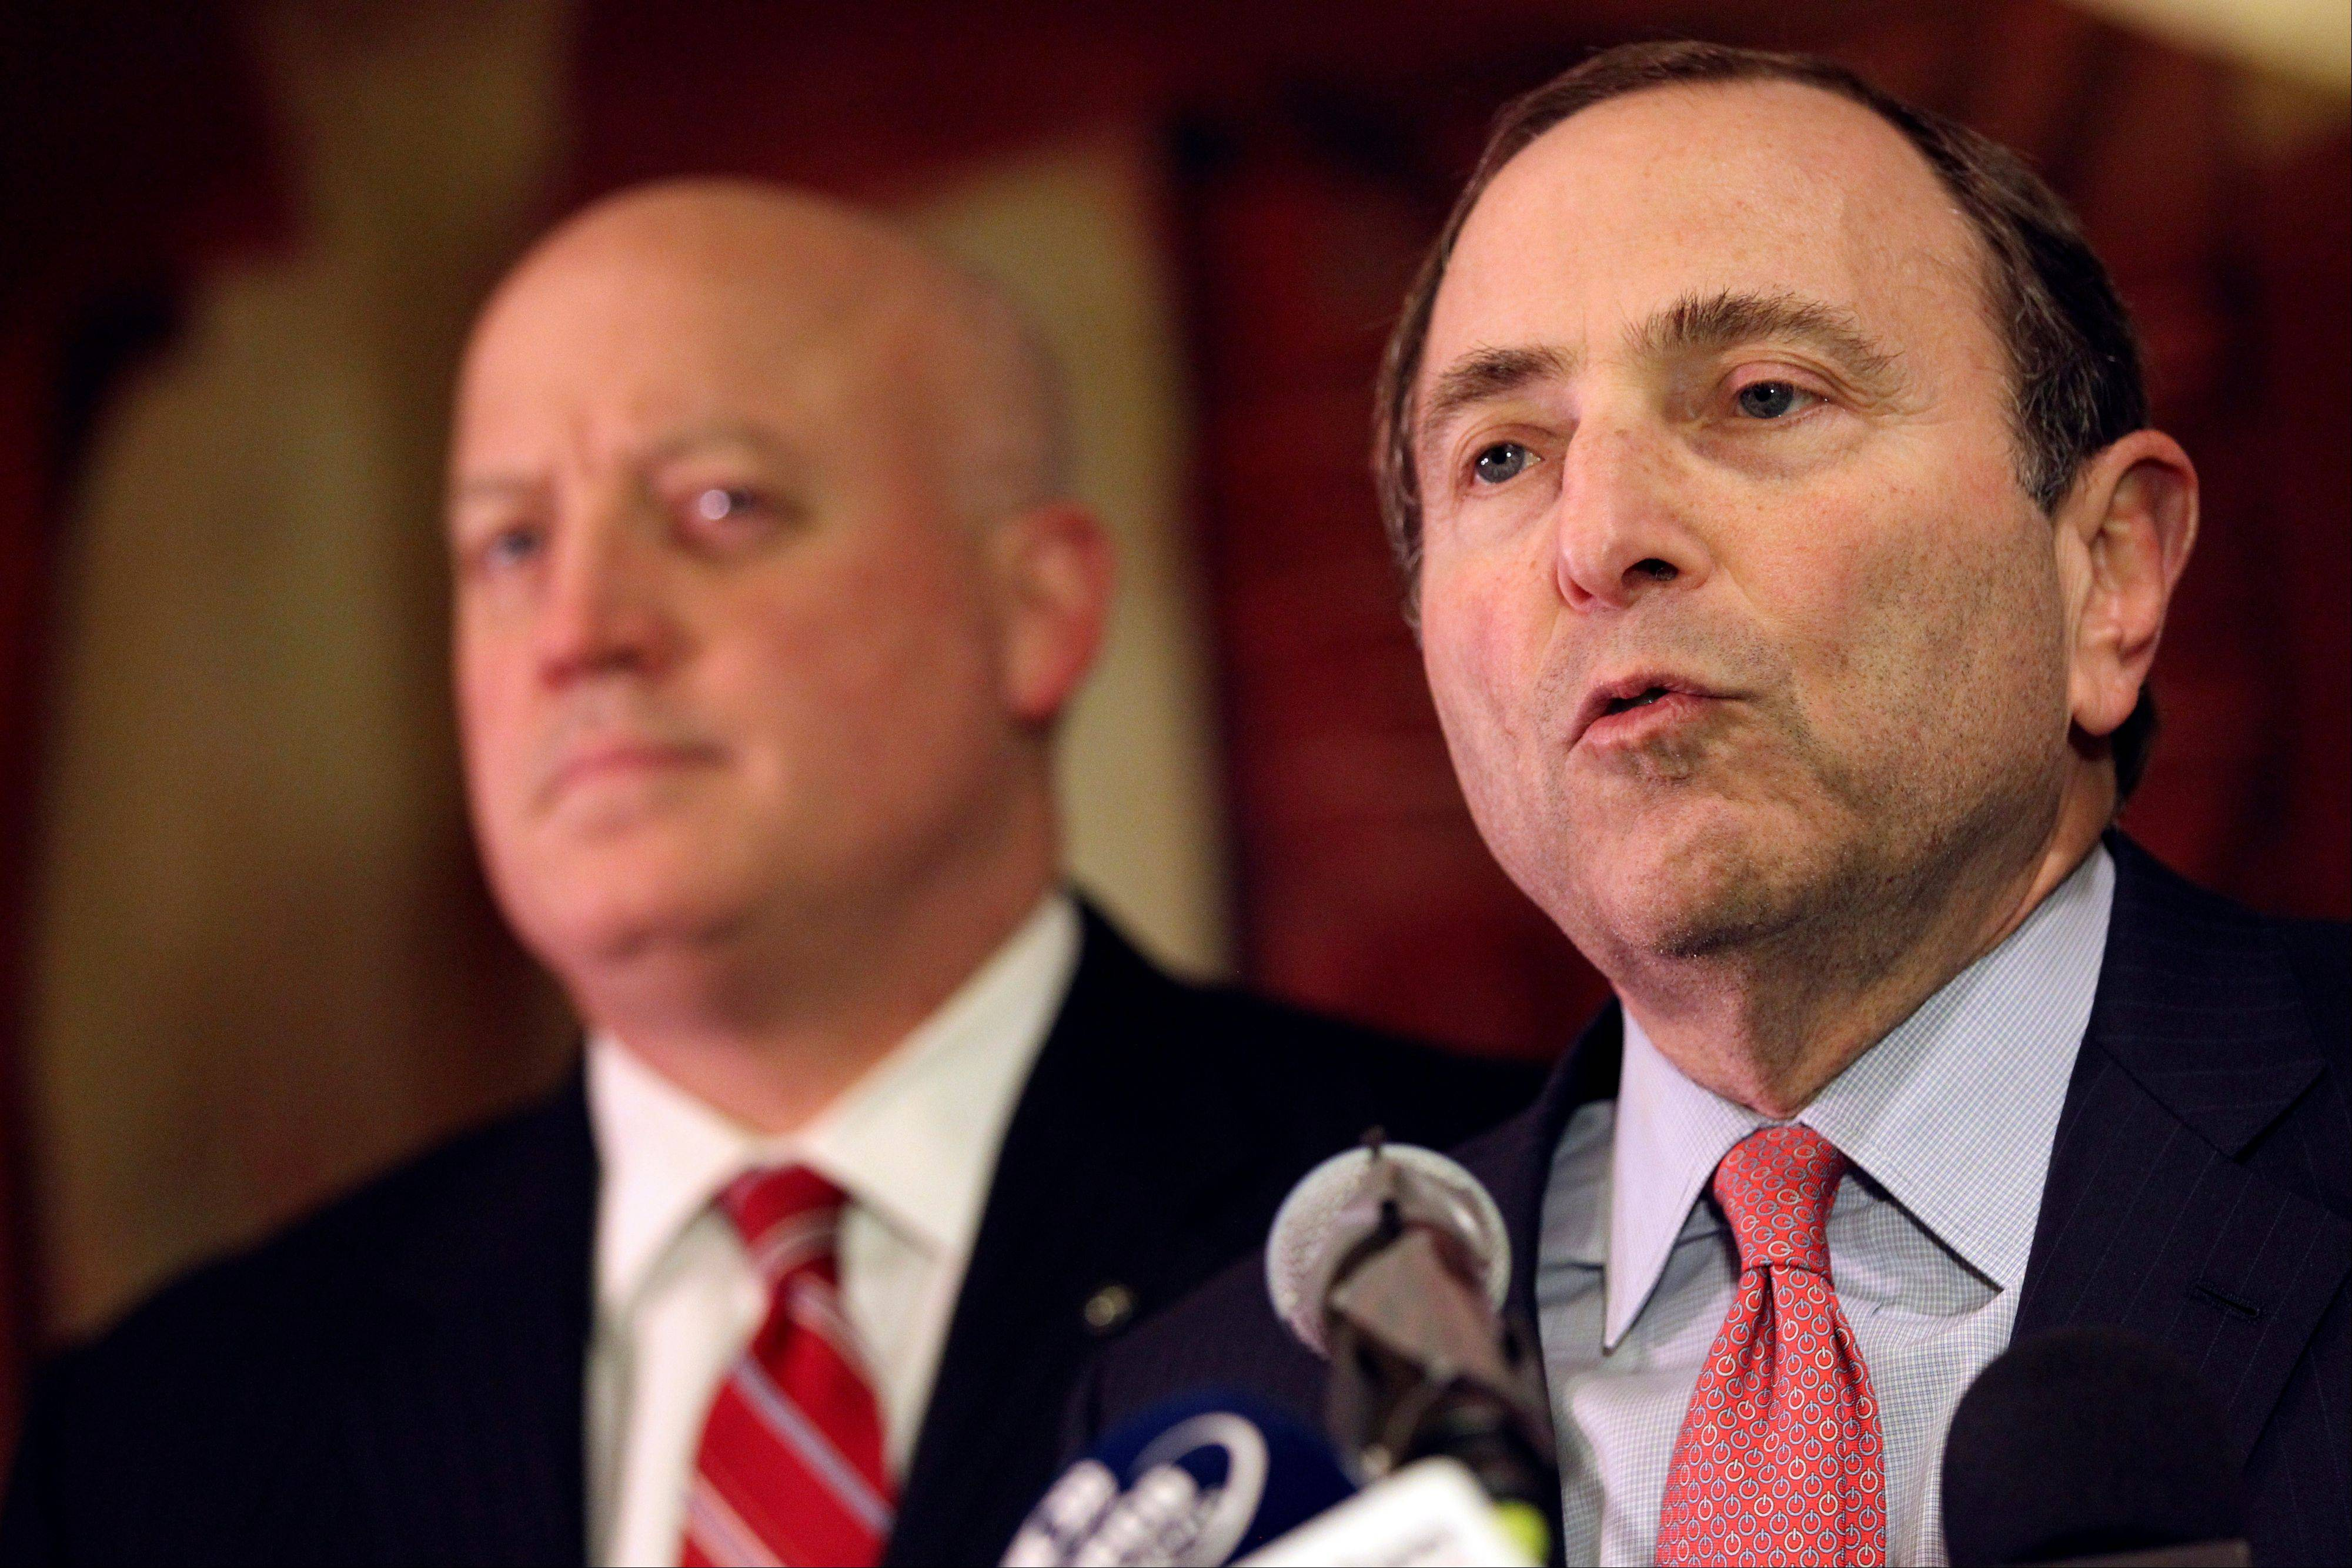 NHL Commissioner Gary Bettman, right, and deputy commissioner Bill Daly speak to reporters last Thursday in New York. The NHL has rejected the players' latest offer but negotiations are expected to resume Wednesday. (AP Photo/Mary Altaffer)